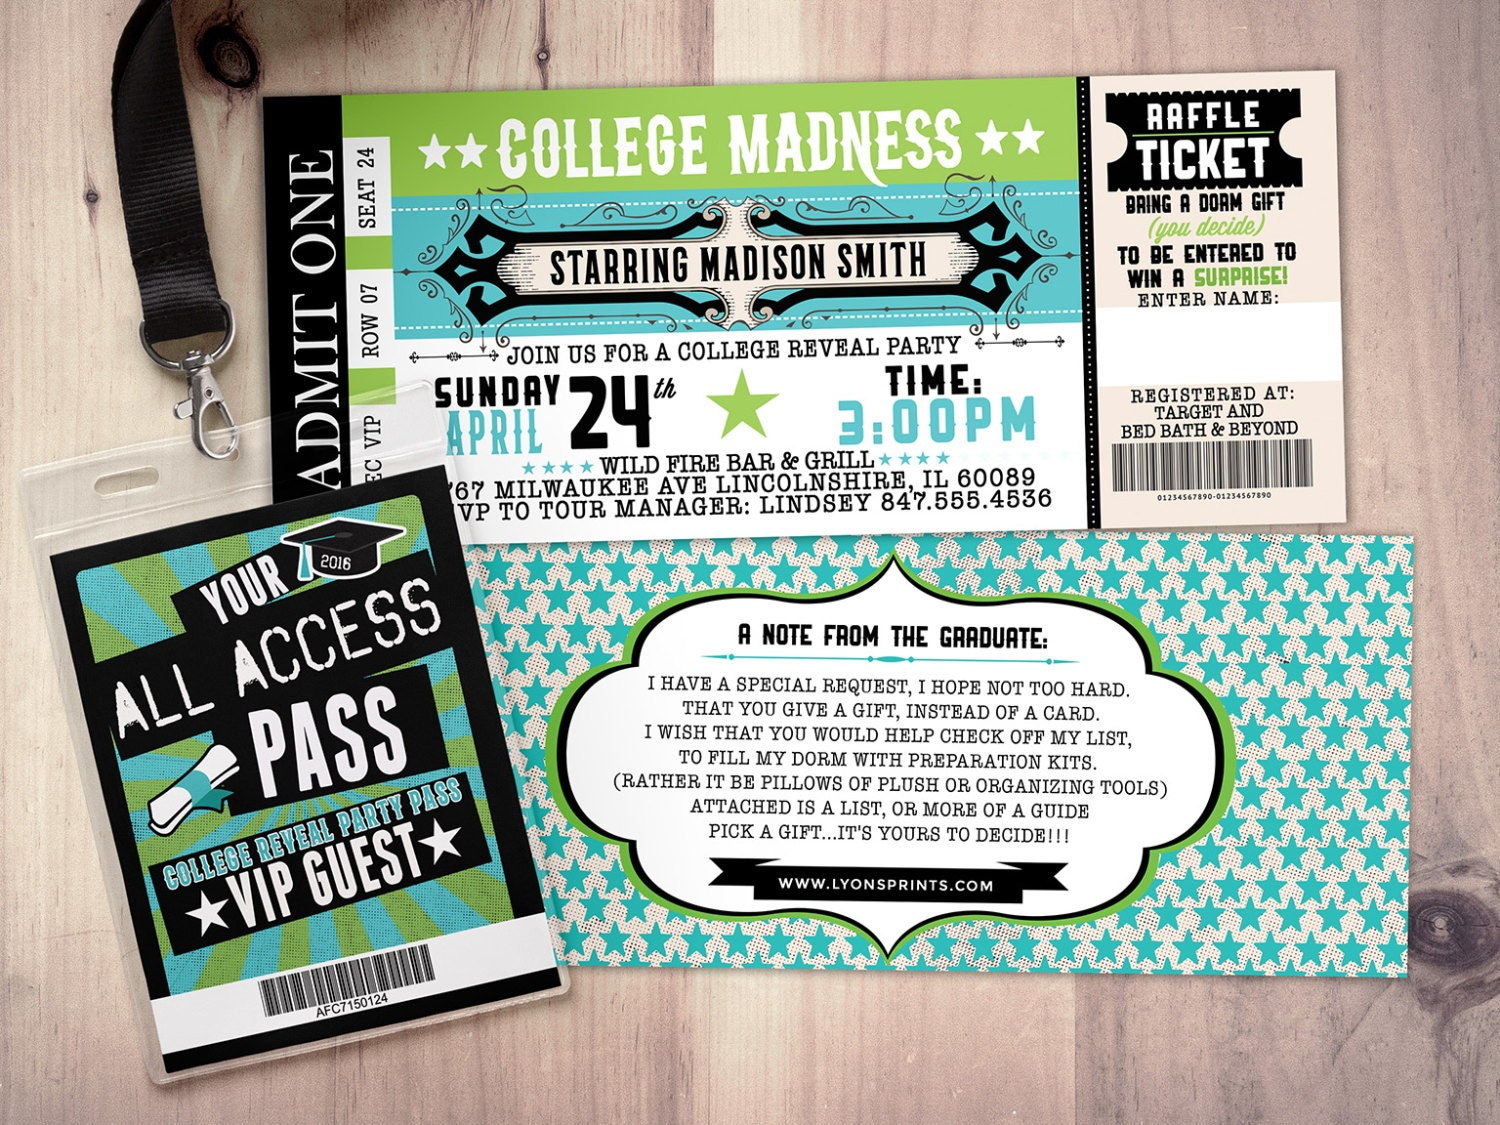 Lovely College Reveal Party, Concert Ticket, Graduation Party Invitation, Rockstar Birthday  Invitation, VIP Pass, Ticket Invitation, Rock Star  Concert Ticket Birthday Invitations